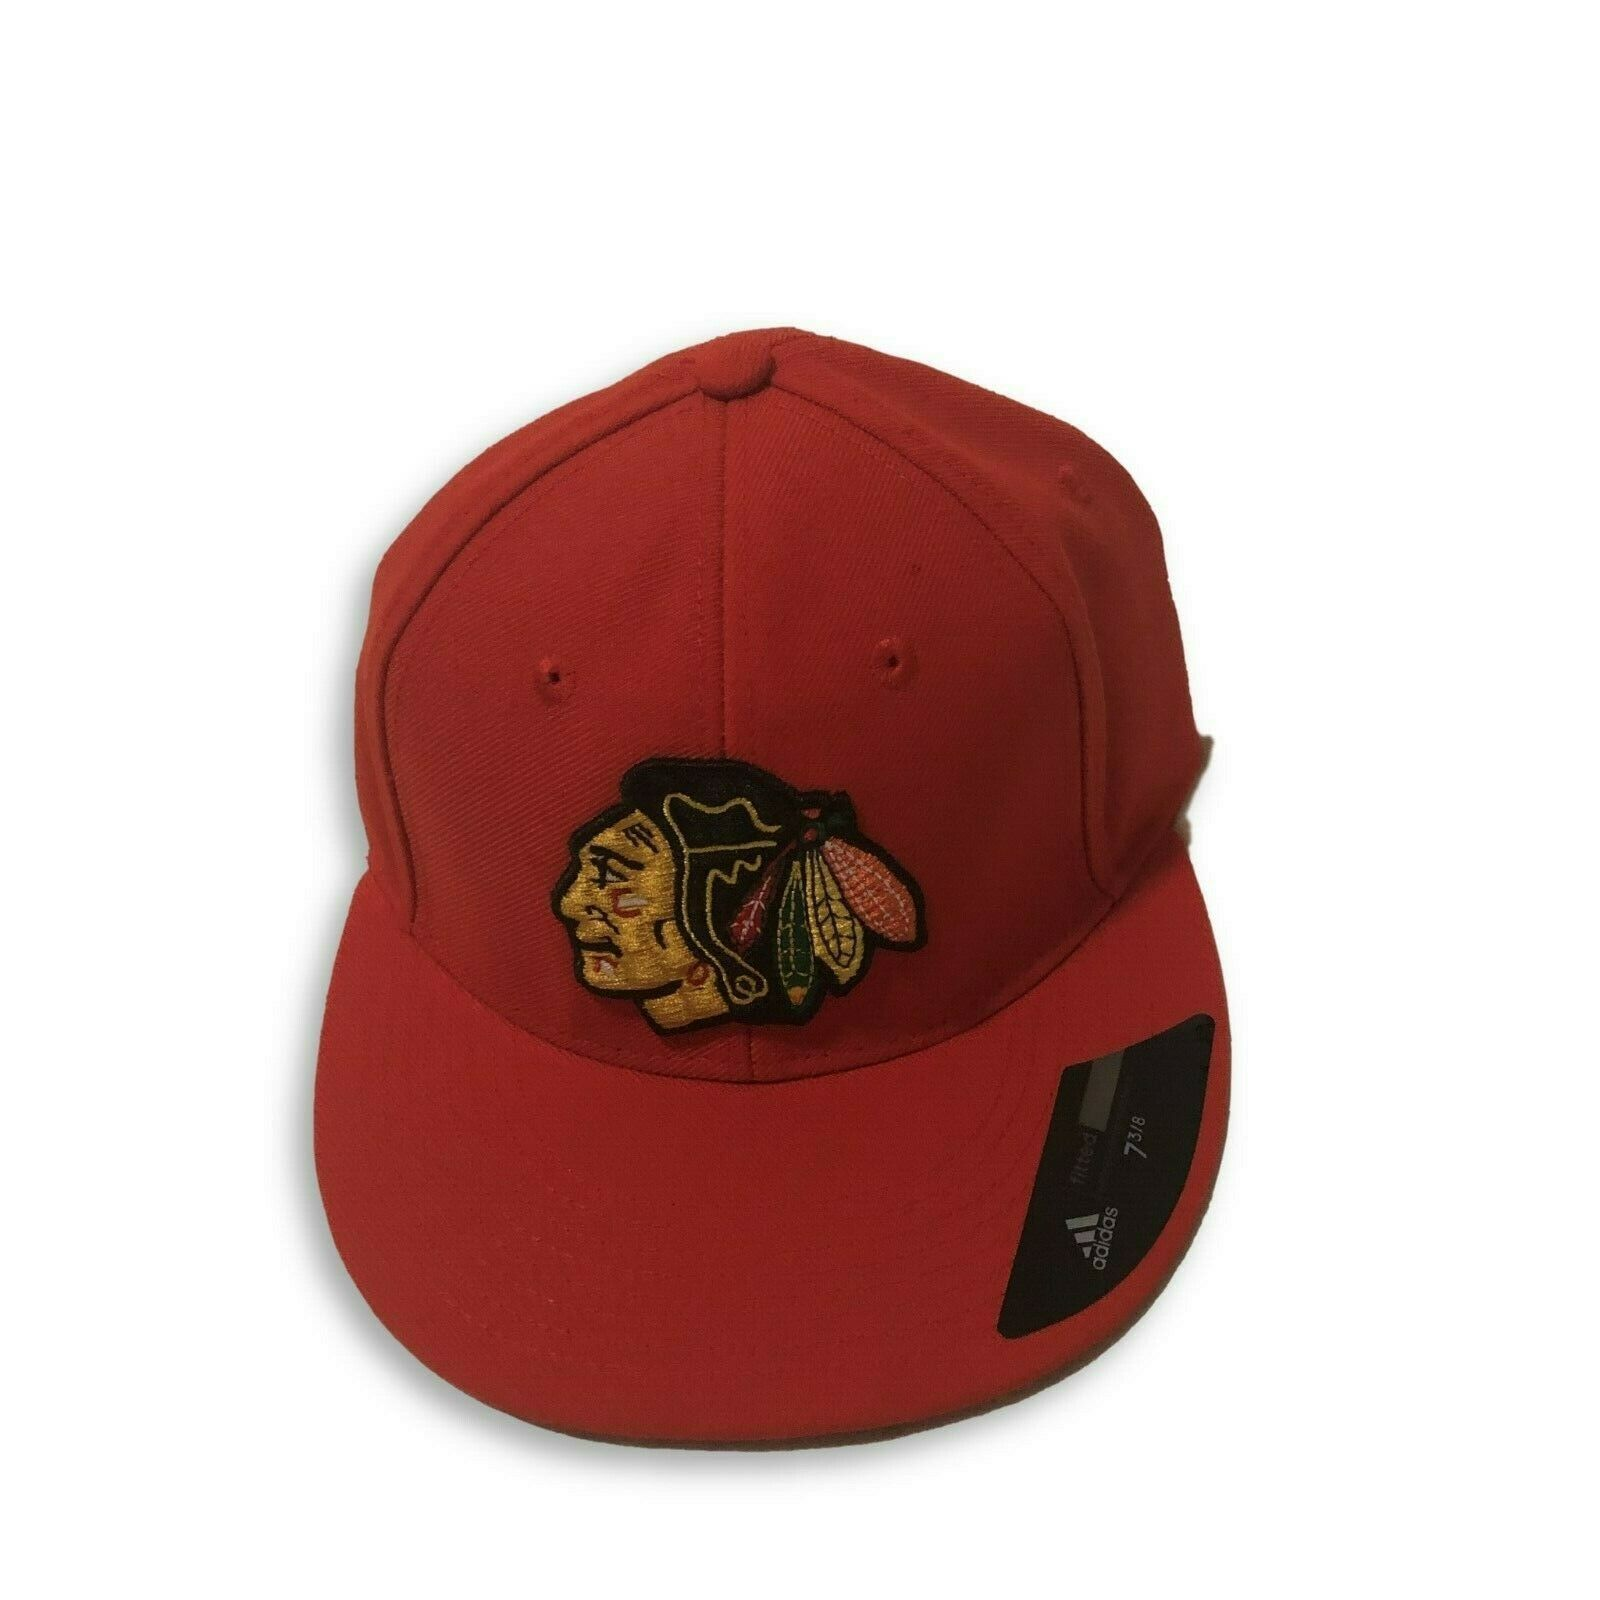 NWT New Chicago Blackhawks adidas Logo Size 7 3/8 Fitted Hat